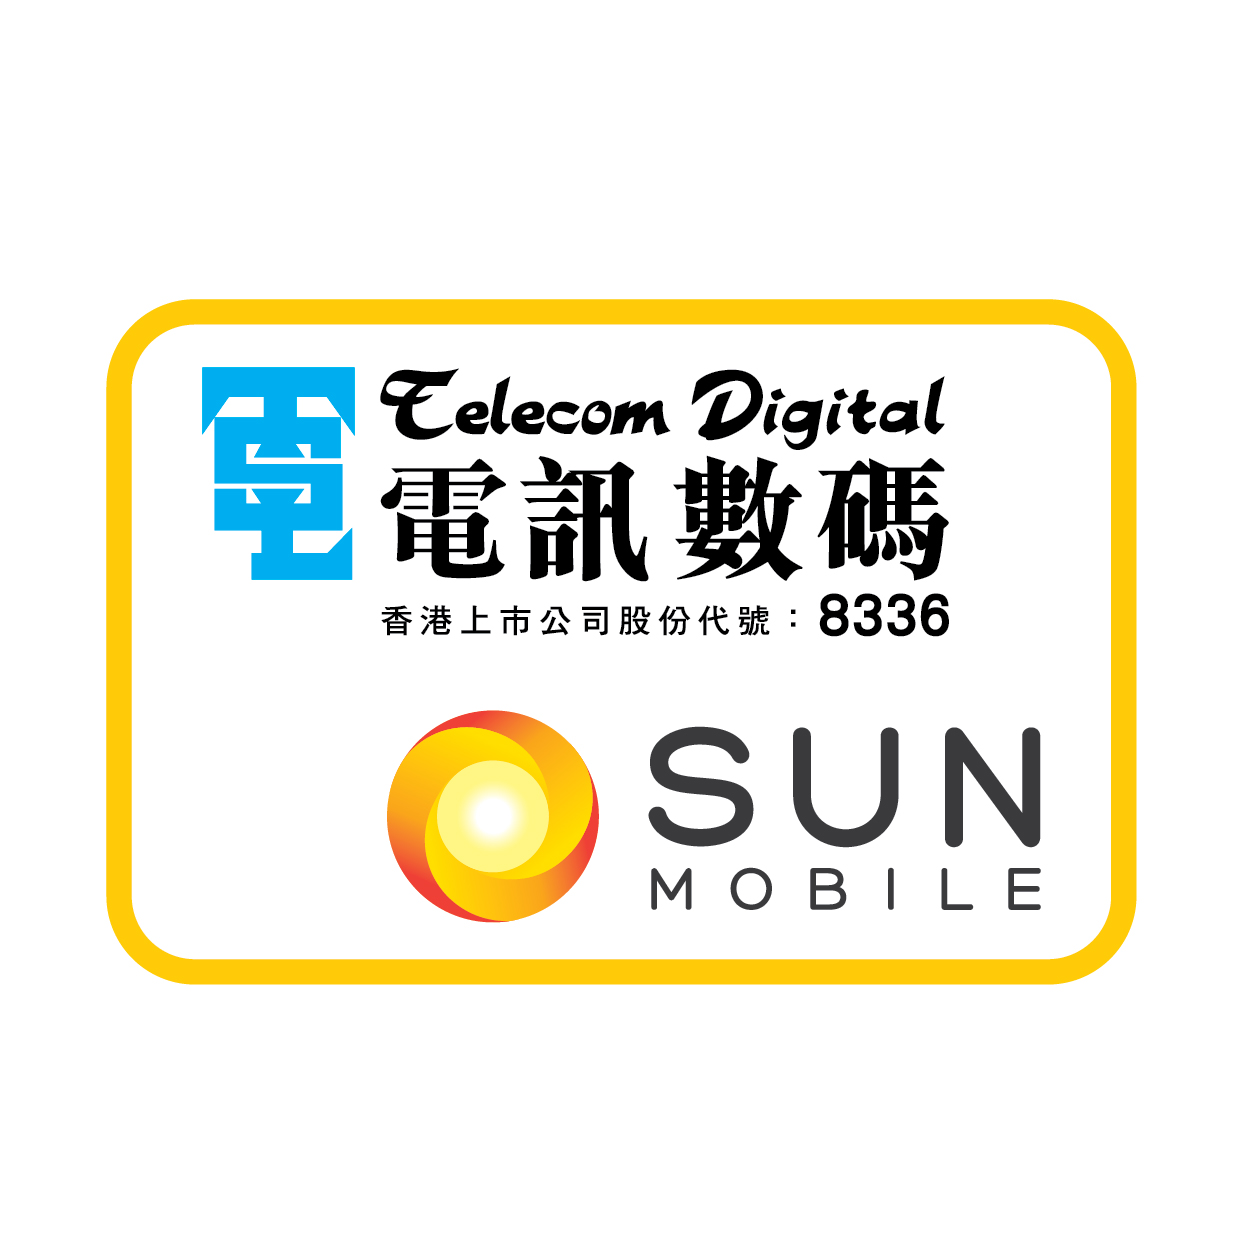 Telecom Digital SUN MOBILE